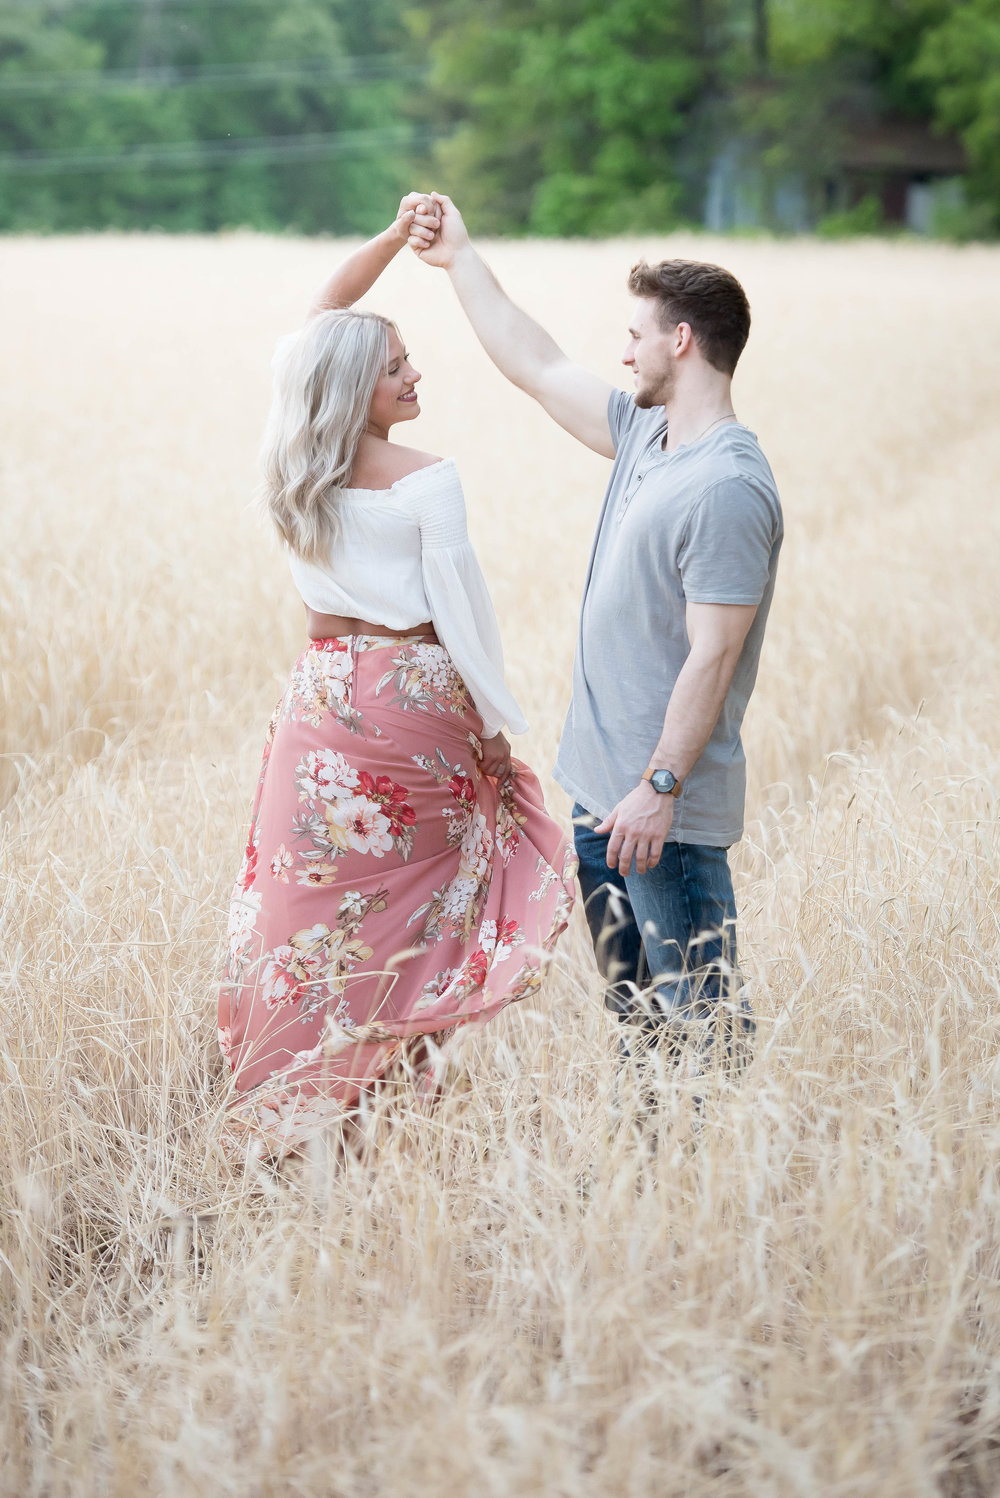 Couple Session - Fitness Couples - Tall Grass Field - Engagement Portrait Ideas - Engagement Session Ideas - Couple Session Ideas - Spring Picture Ideas-18.jpg